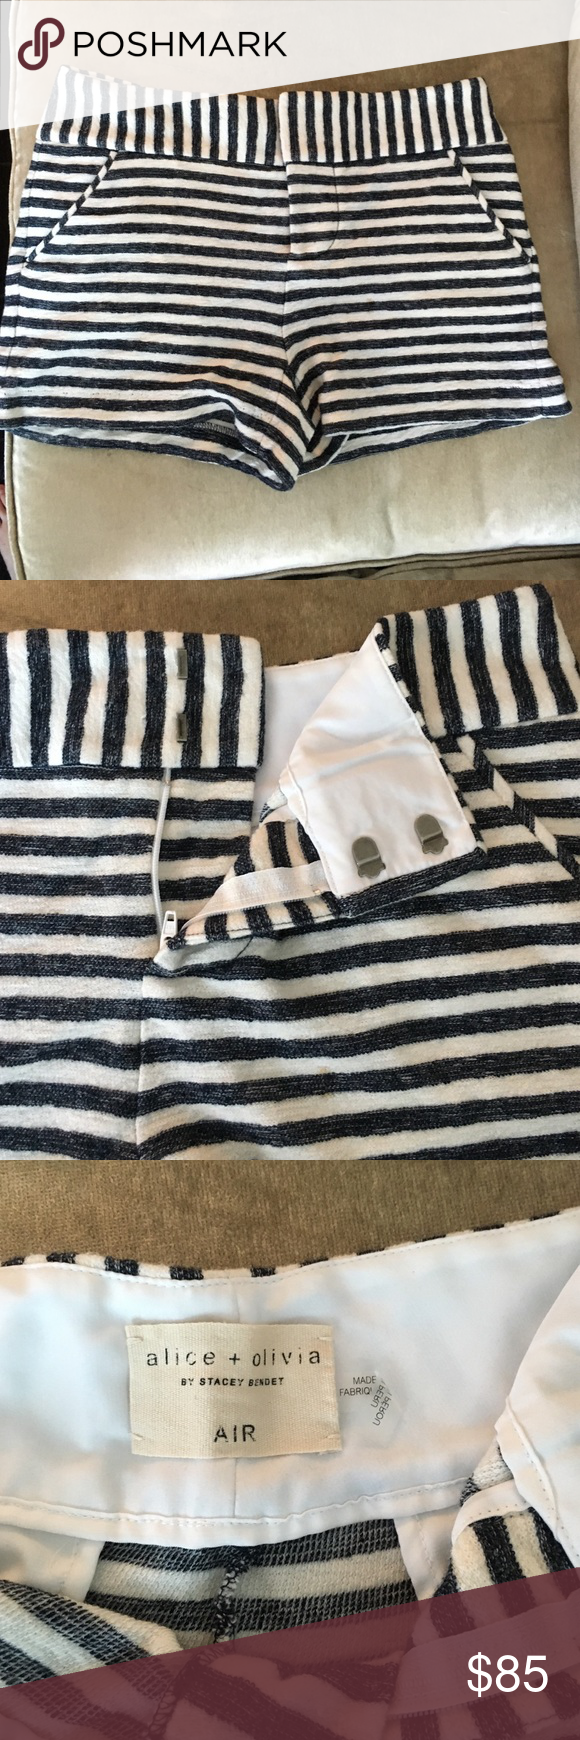 Alice and Olivia terry cloth shorts size 4 Never worn. Terry cloth and horizontal and diagonal striped. Pockets. Never worn. Tags off. Alice + Olivia Shorts